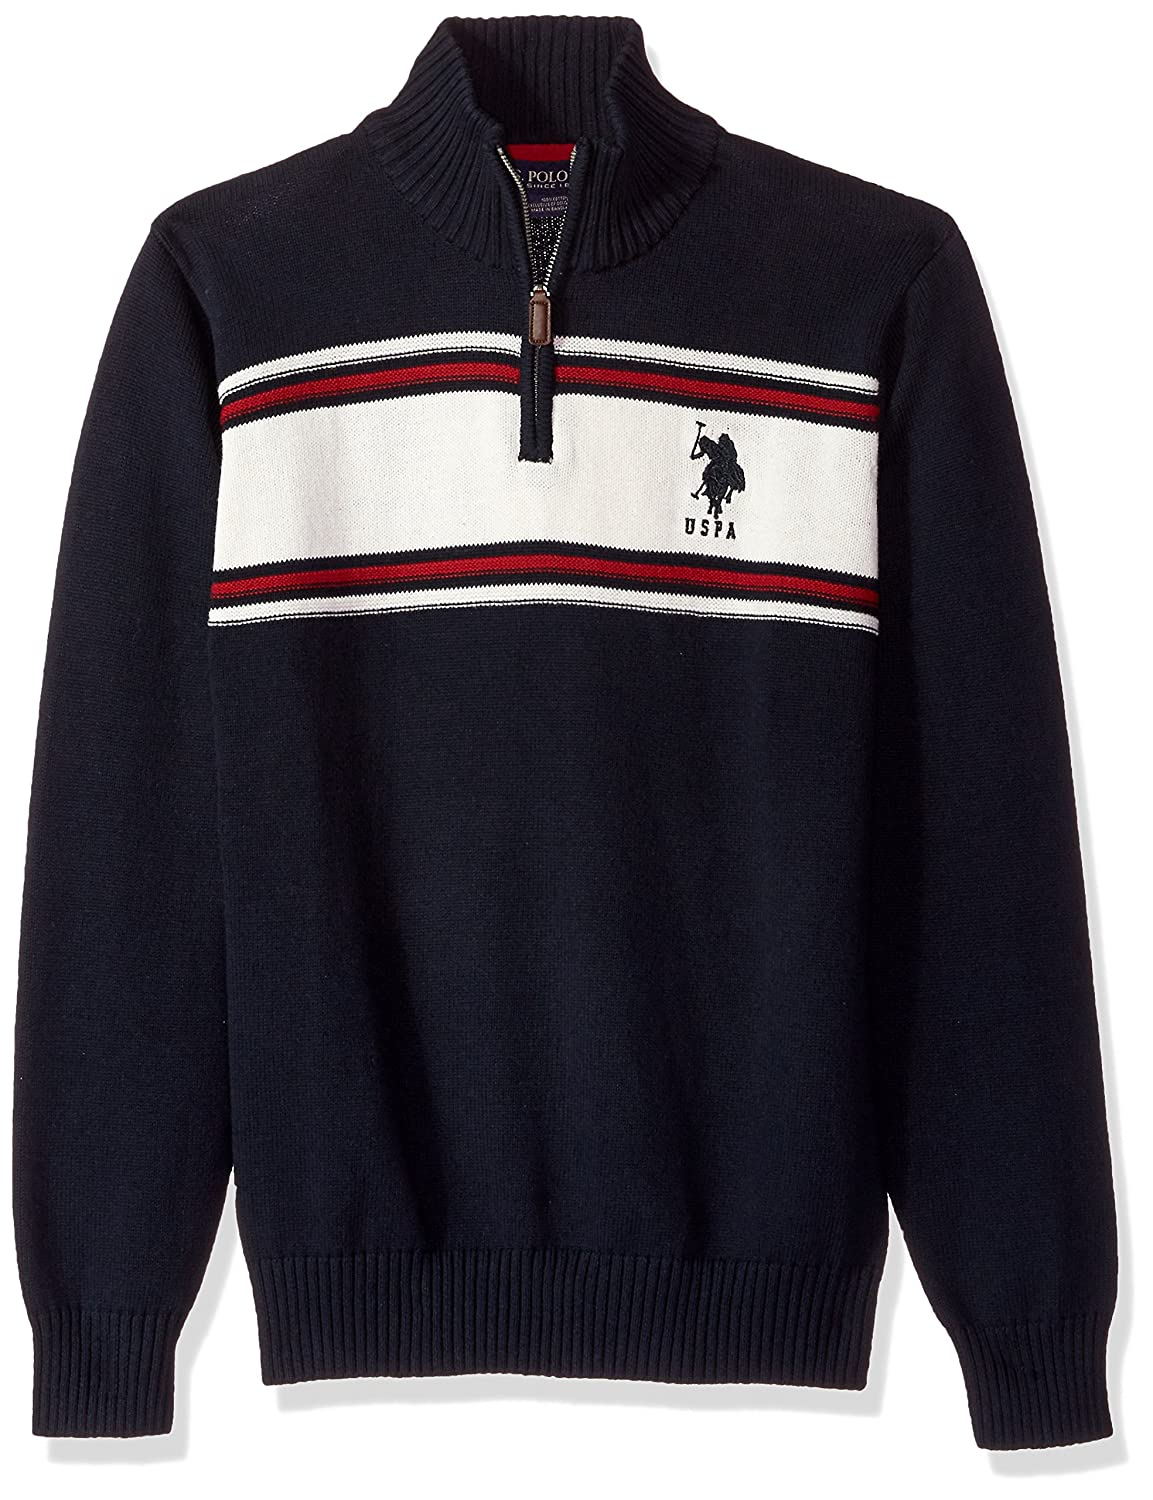 U.S. Polo Assn. Men's Chest Stripe 1/4 Zip Sweater ACUF7S5848